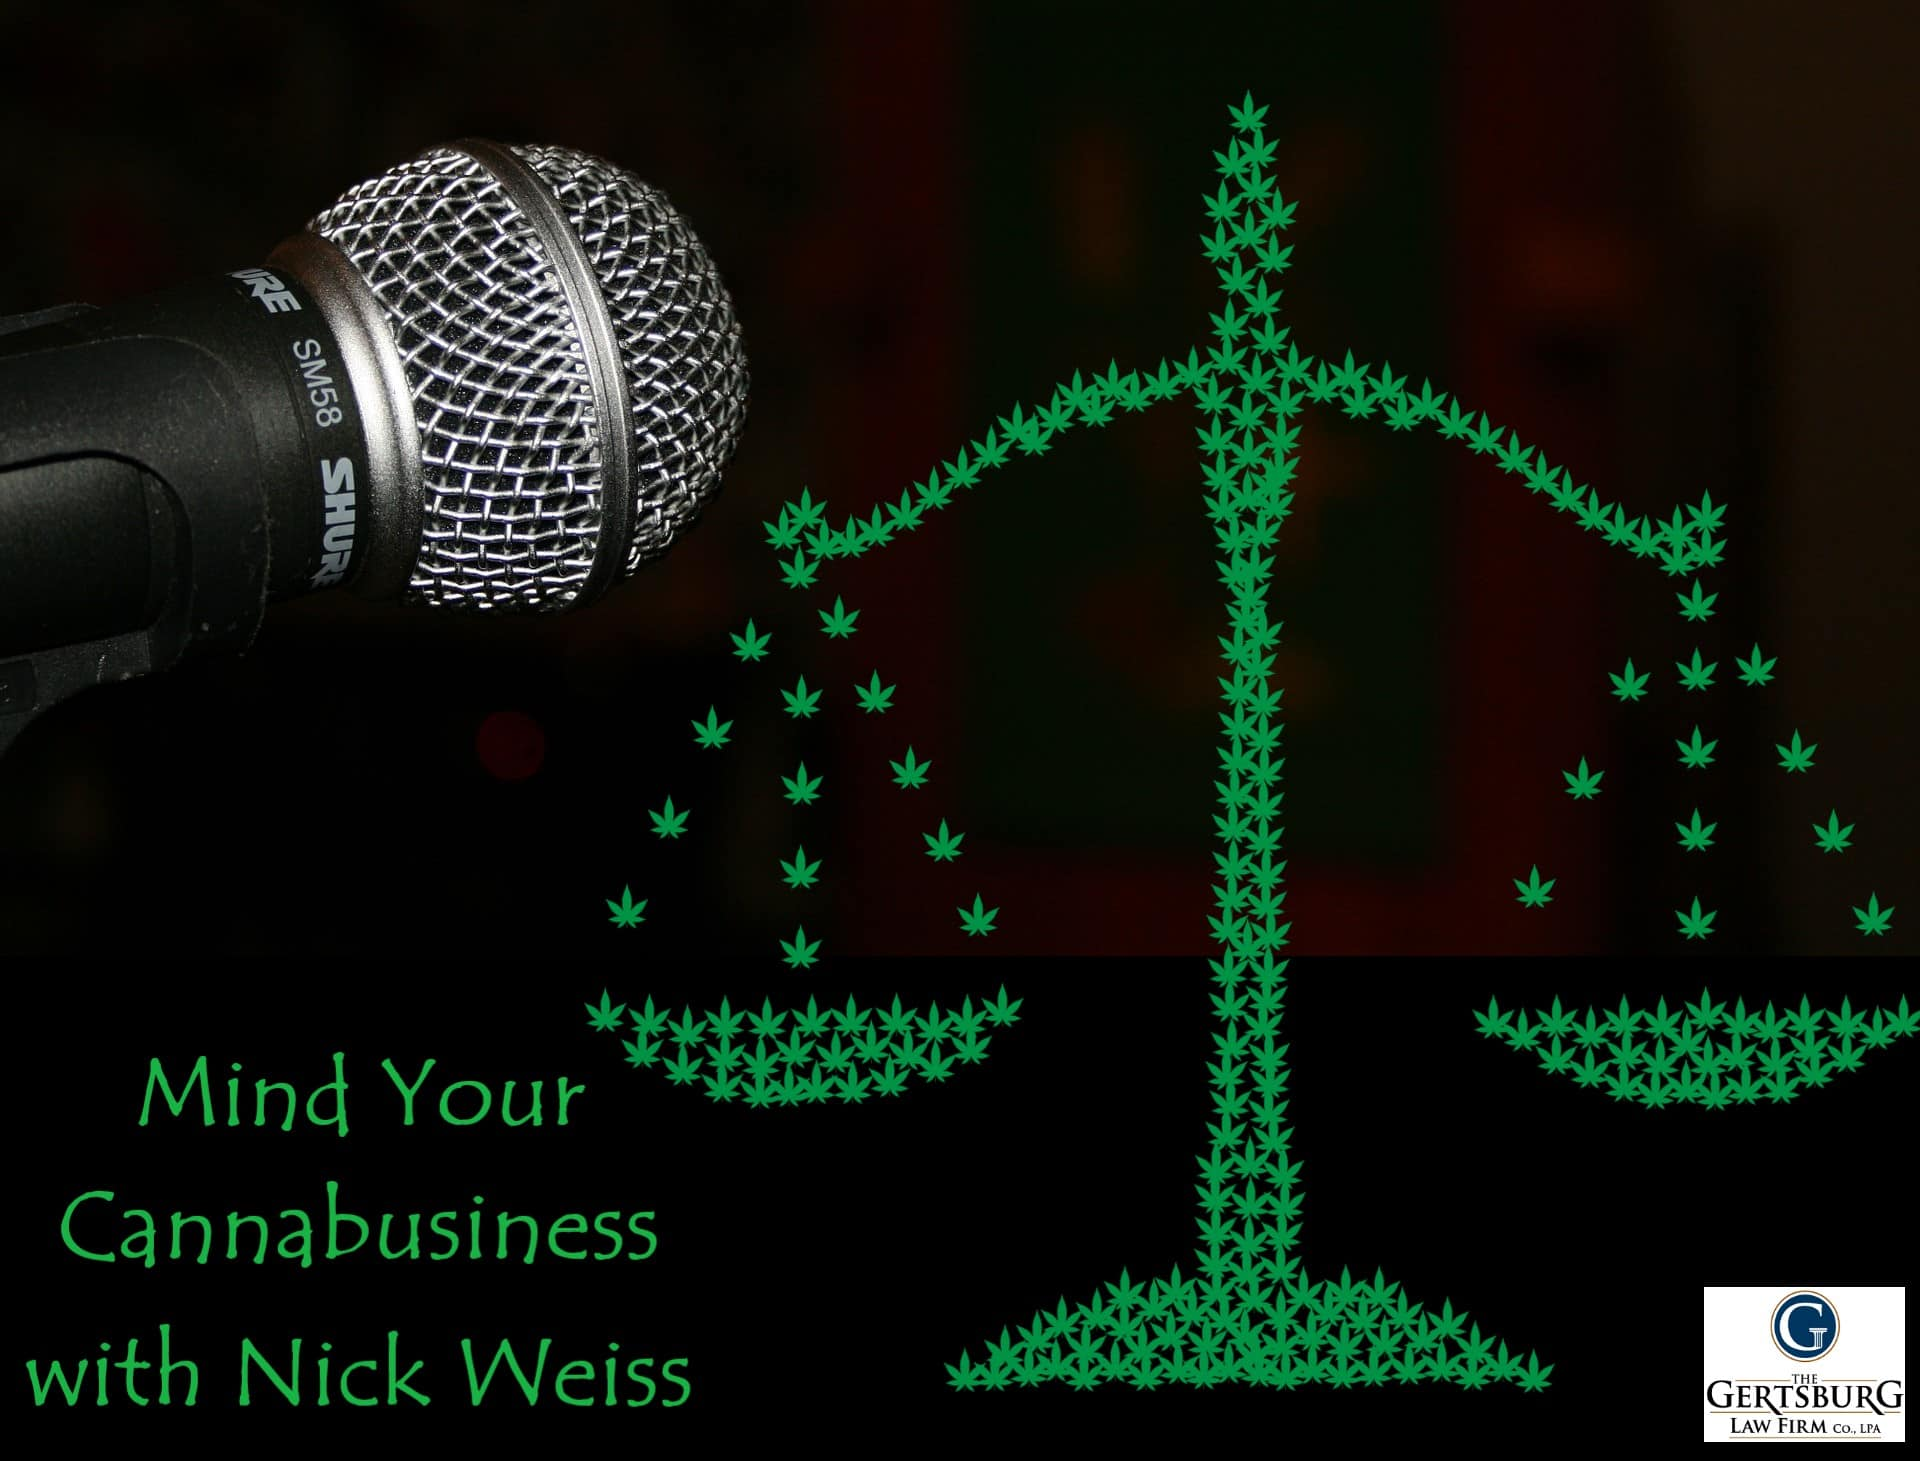 Mind Your Cannabusiness with Nick Weiss logo